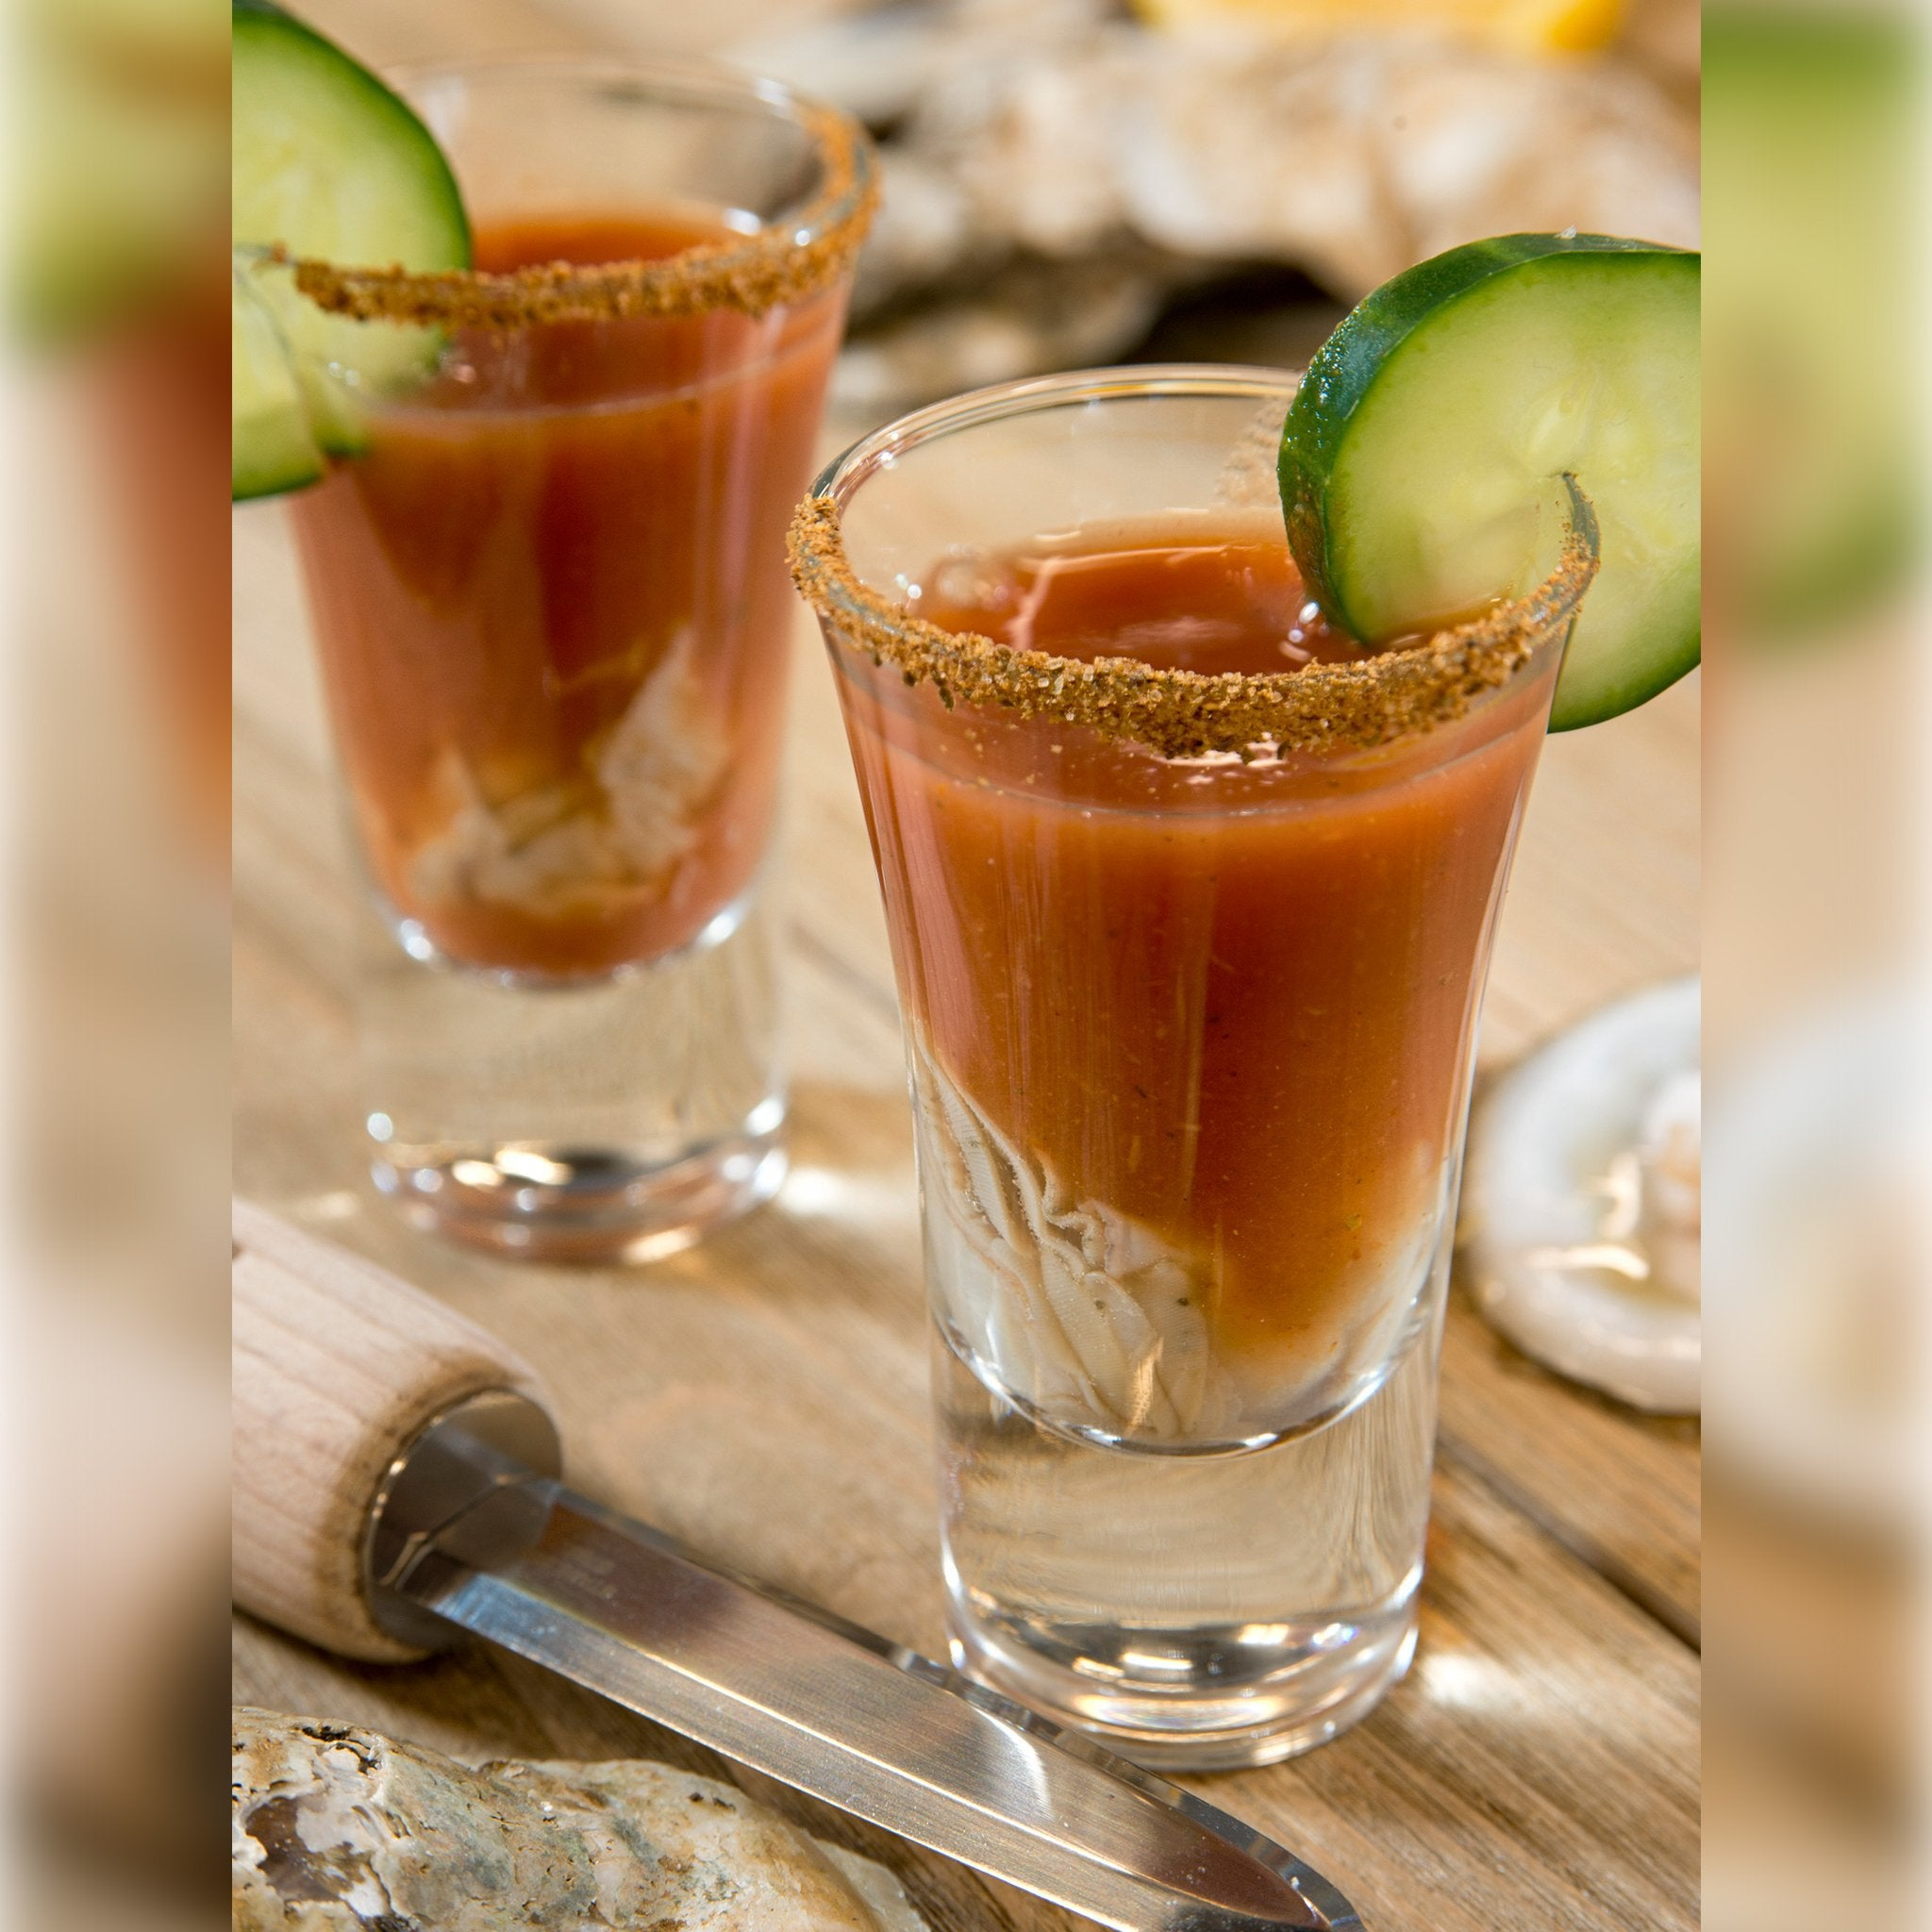 The Coastal Mary Oyster Shooters